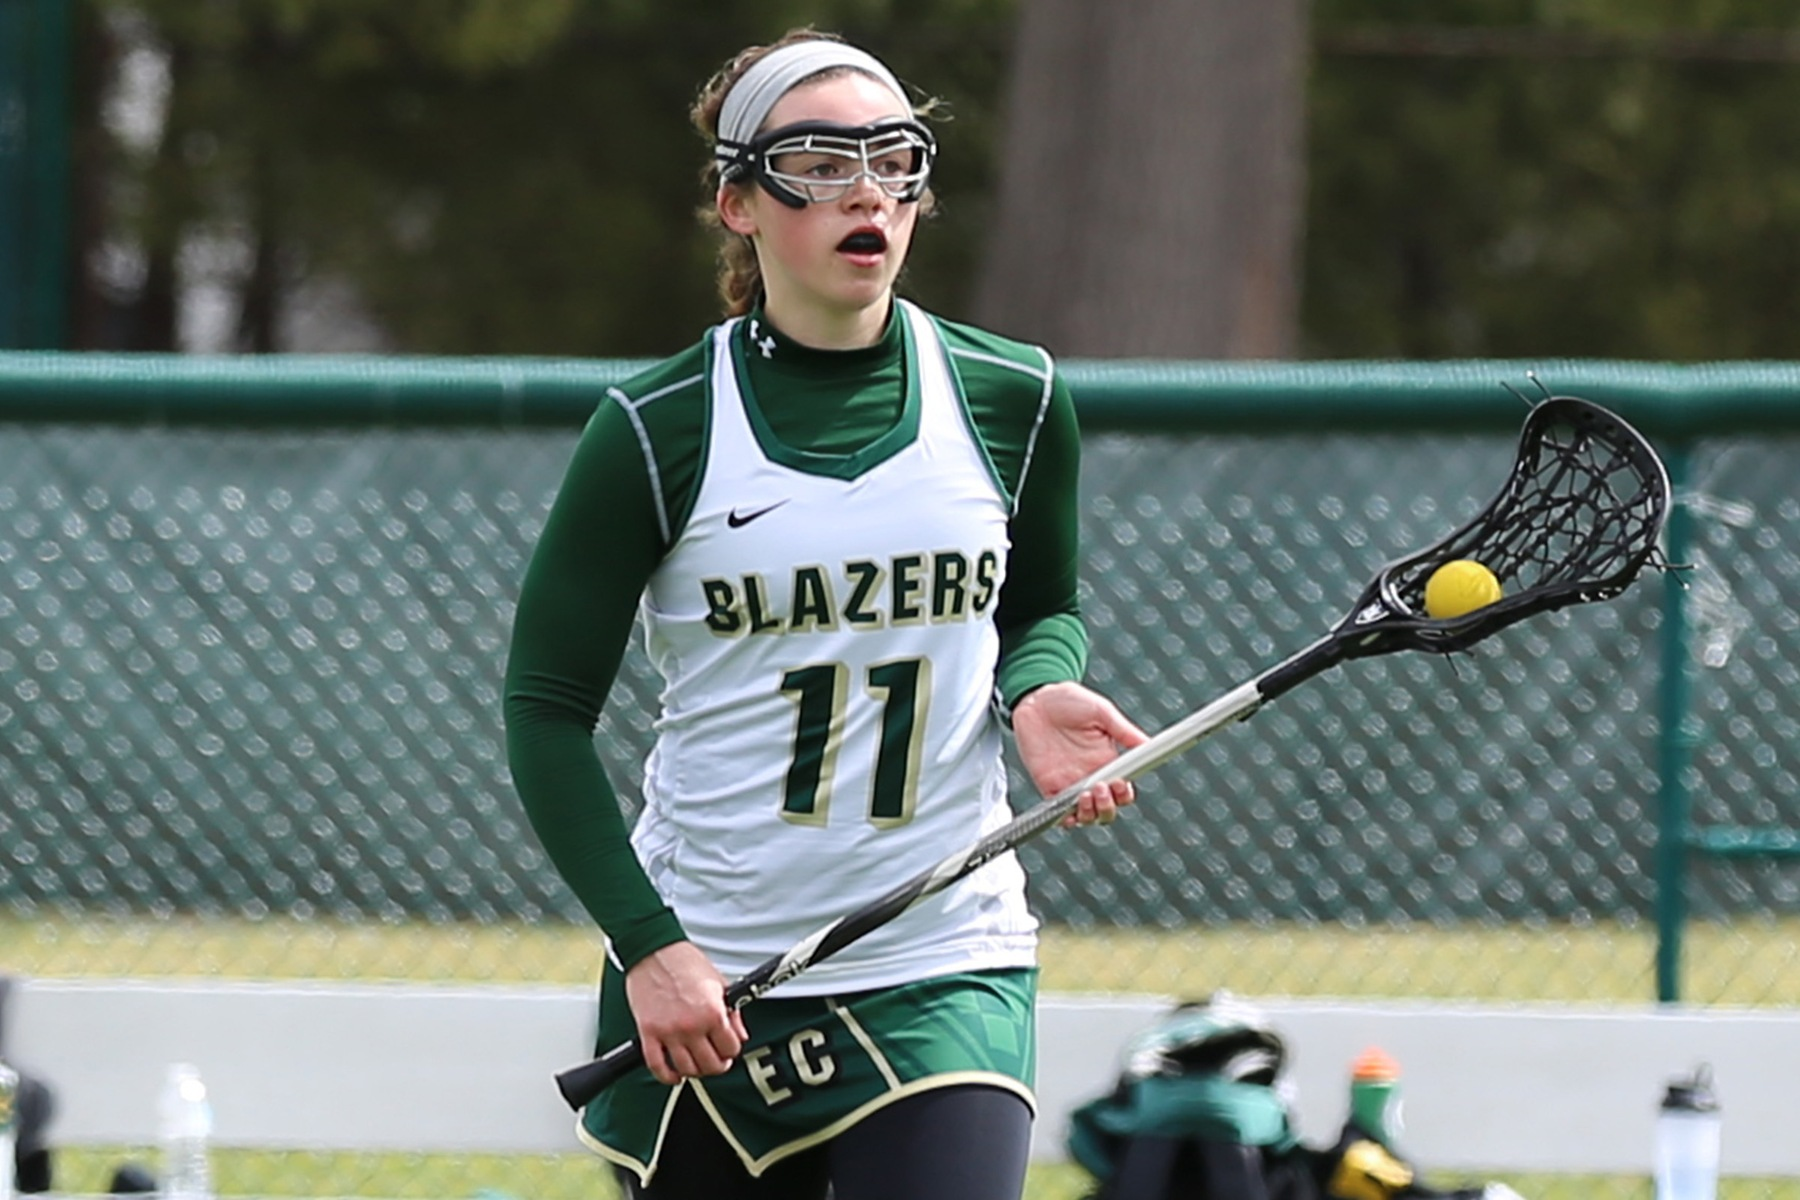 Richard Scores 100th Goal As Blazers Knock Off SVC On The Road